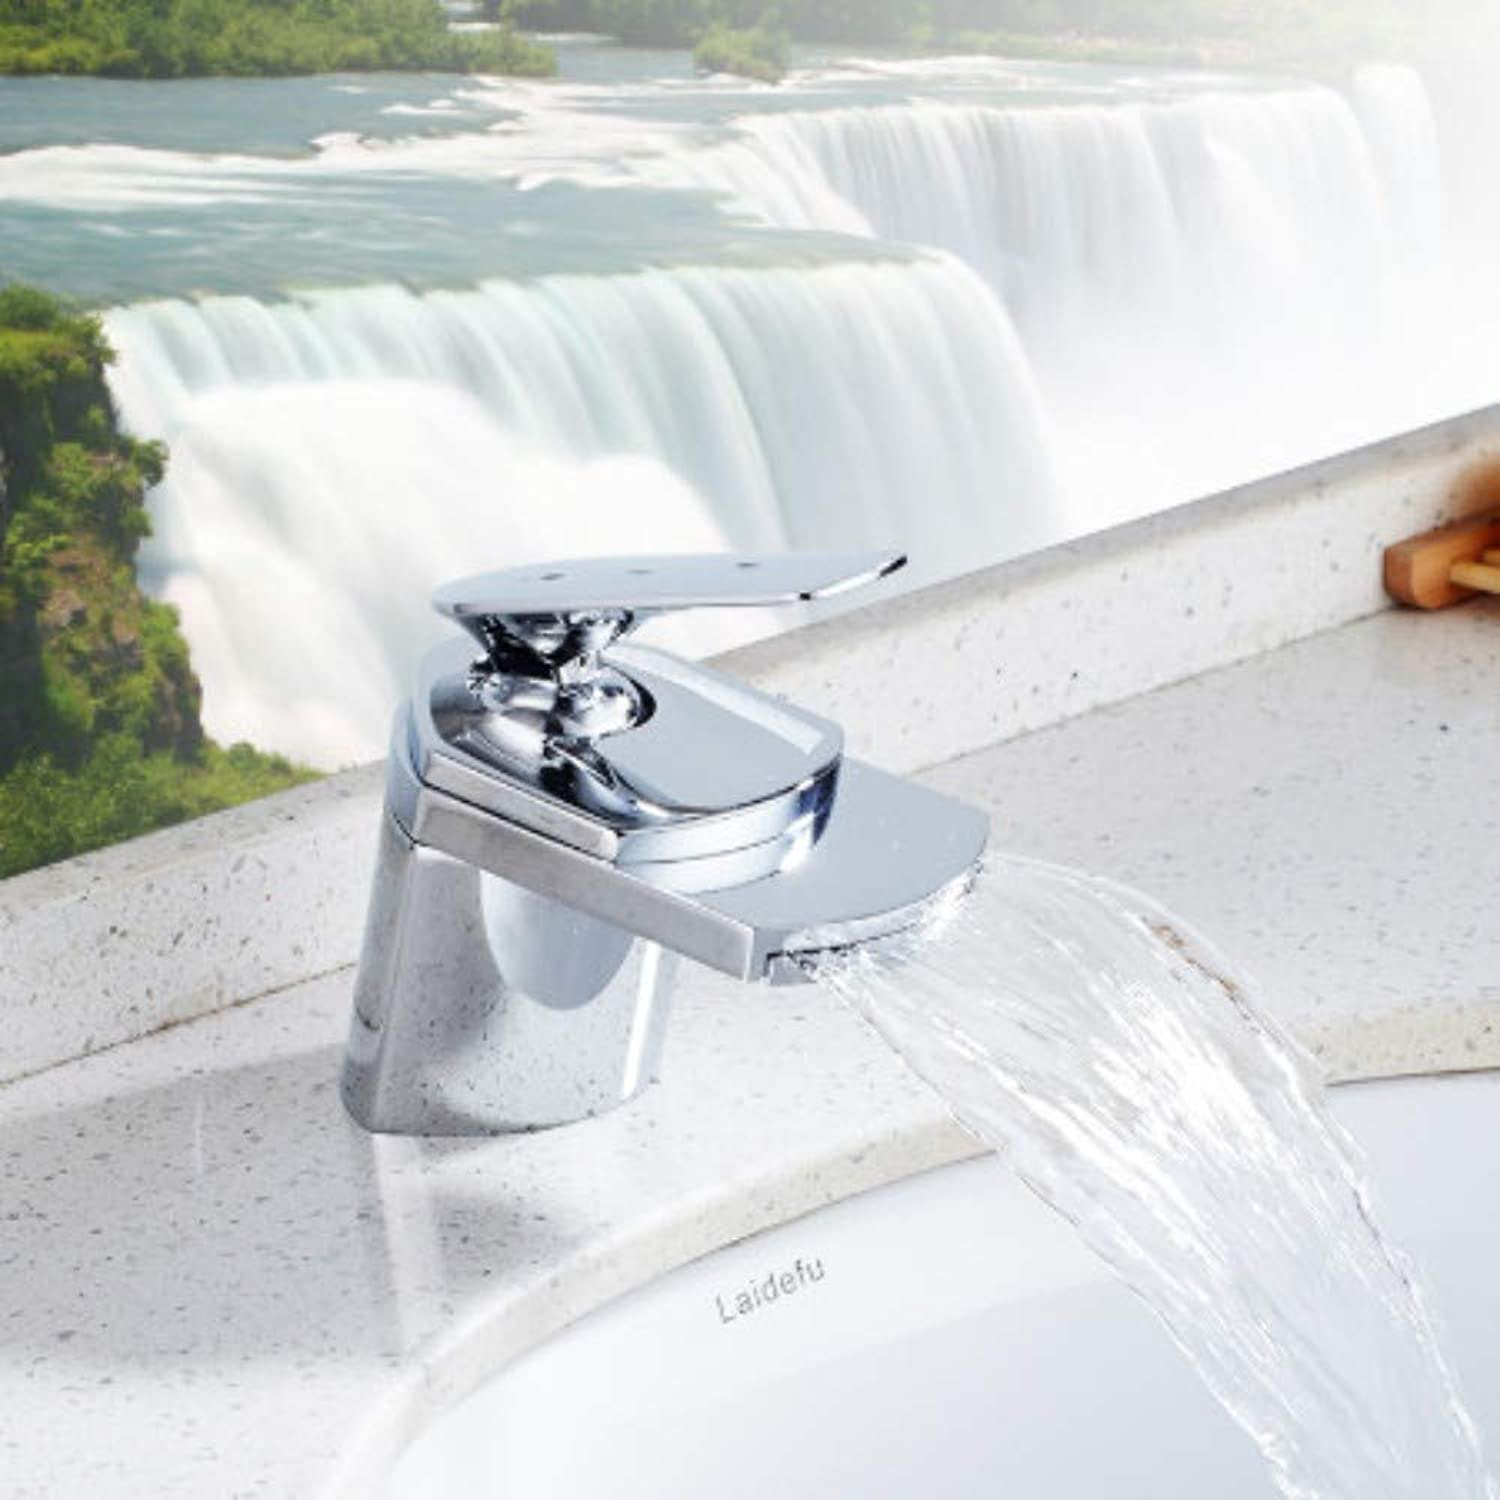 FUJUNJIE Waterfall basin faucet???single handle waterfall spout faucet???with pop-up drain